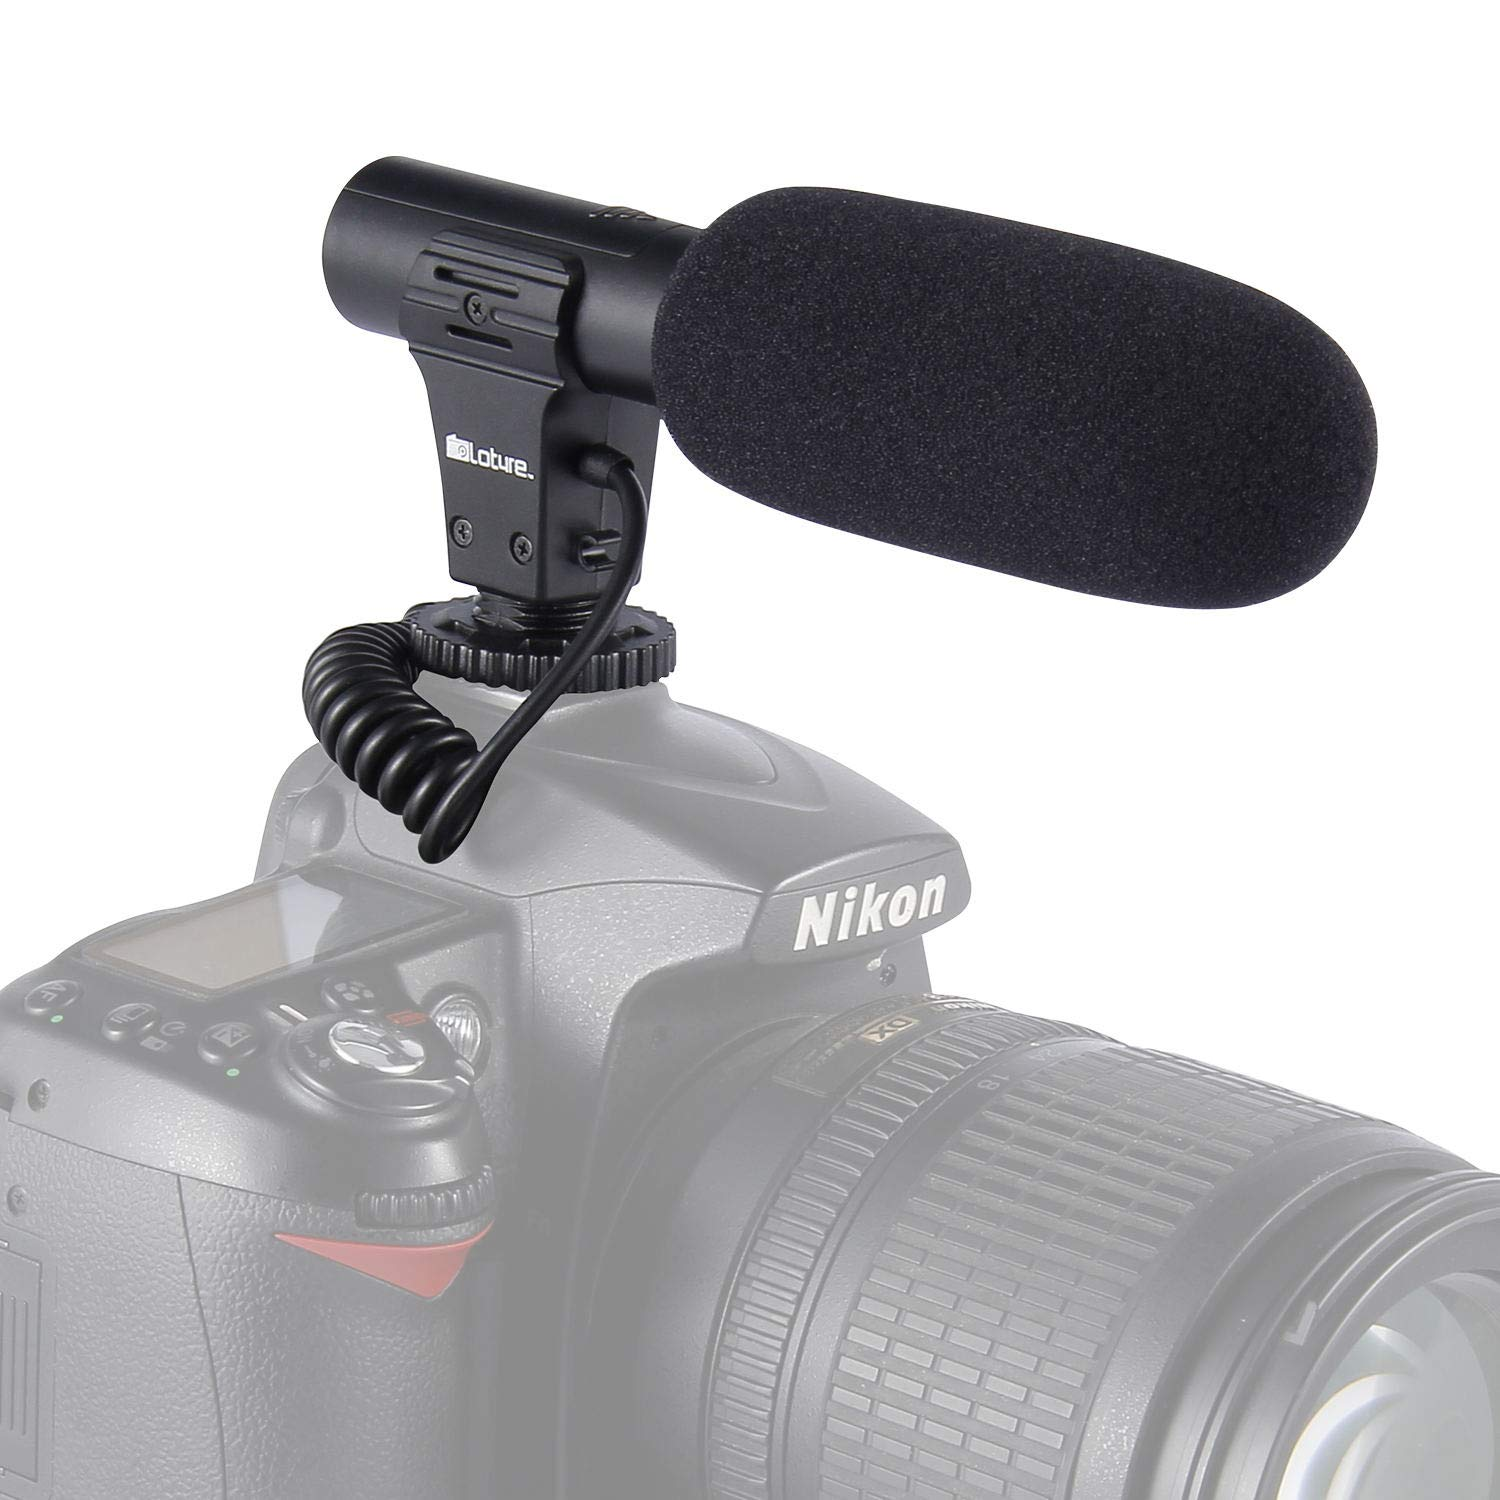 Video Microphone, Photography Interview MIC Microphone Compatible Sony, Nikon Canon,DSLR Cameras, Camcorders. (3.5mm Interface)(Except for Canon T5i,T6) by PLOTURE